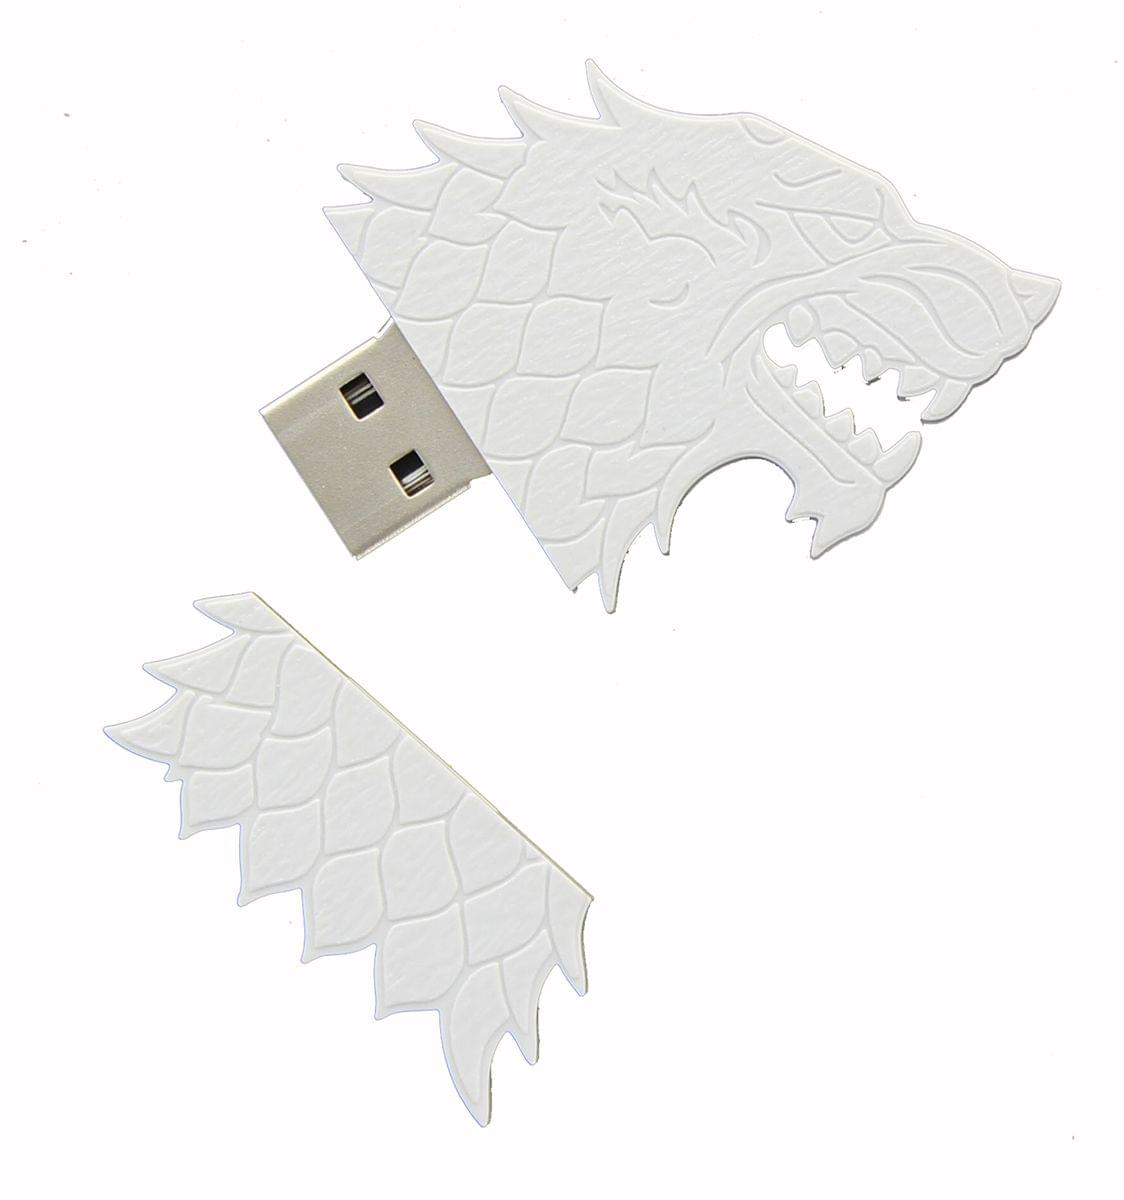 16GB Game of Thrones Direwolf USB Flash Drive